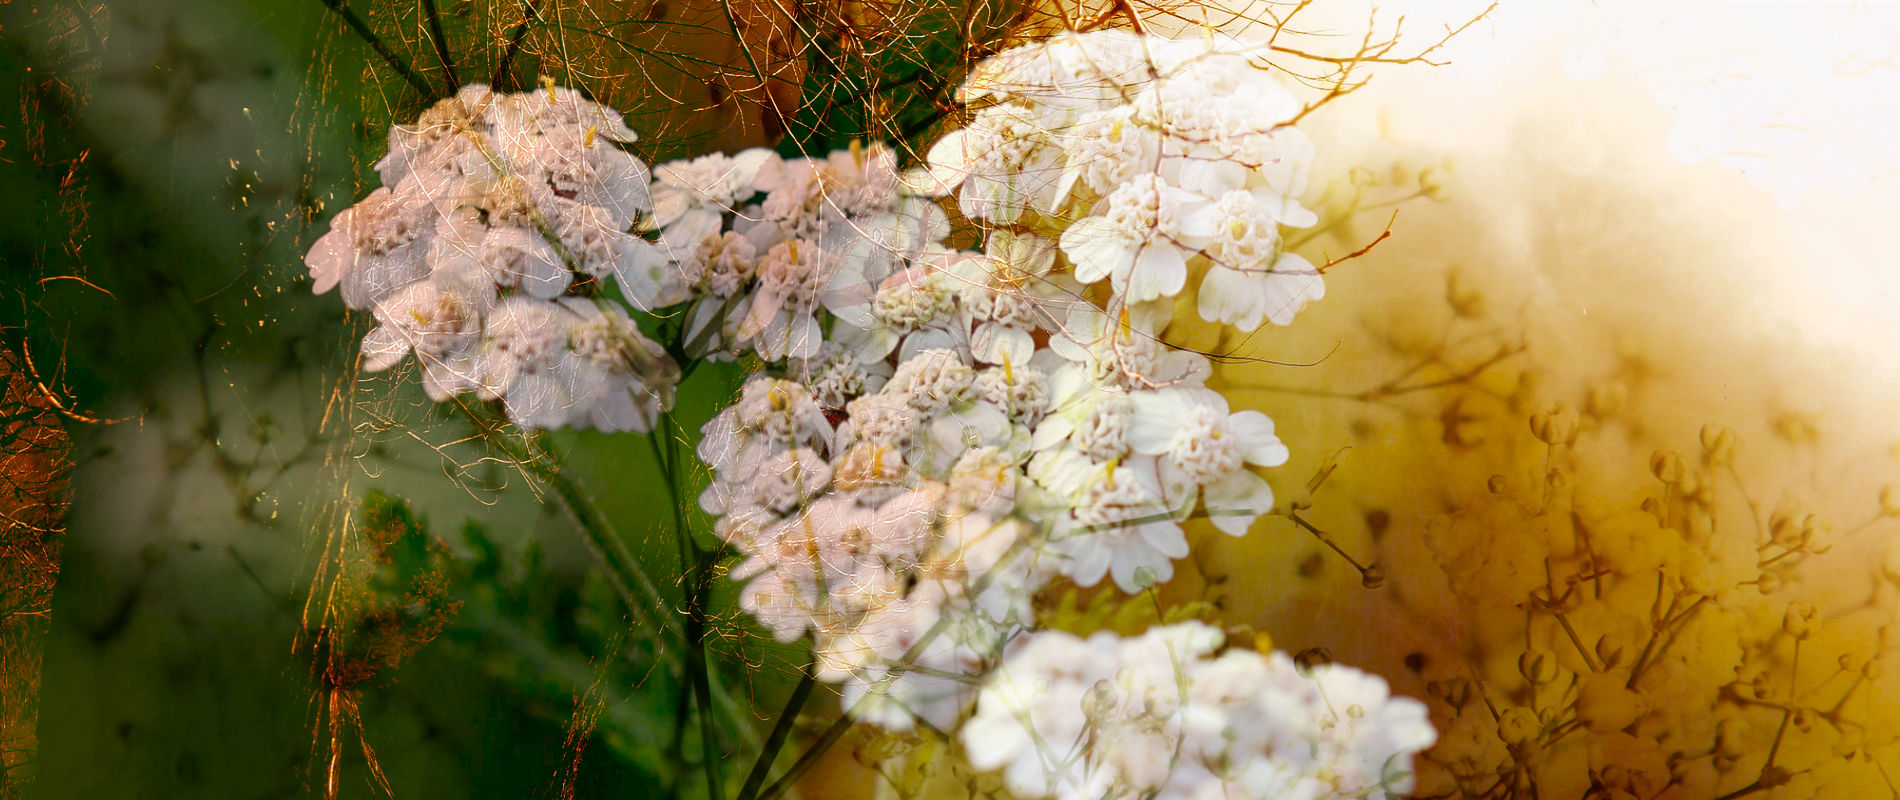 White Yarrow Flowers amidst Brush and Twigs